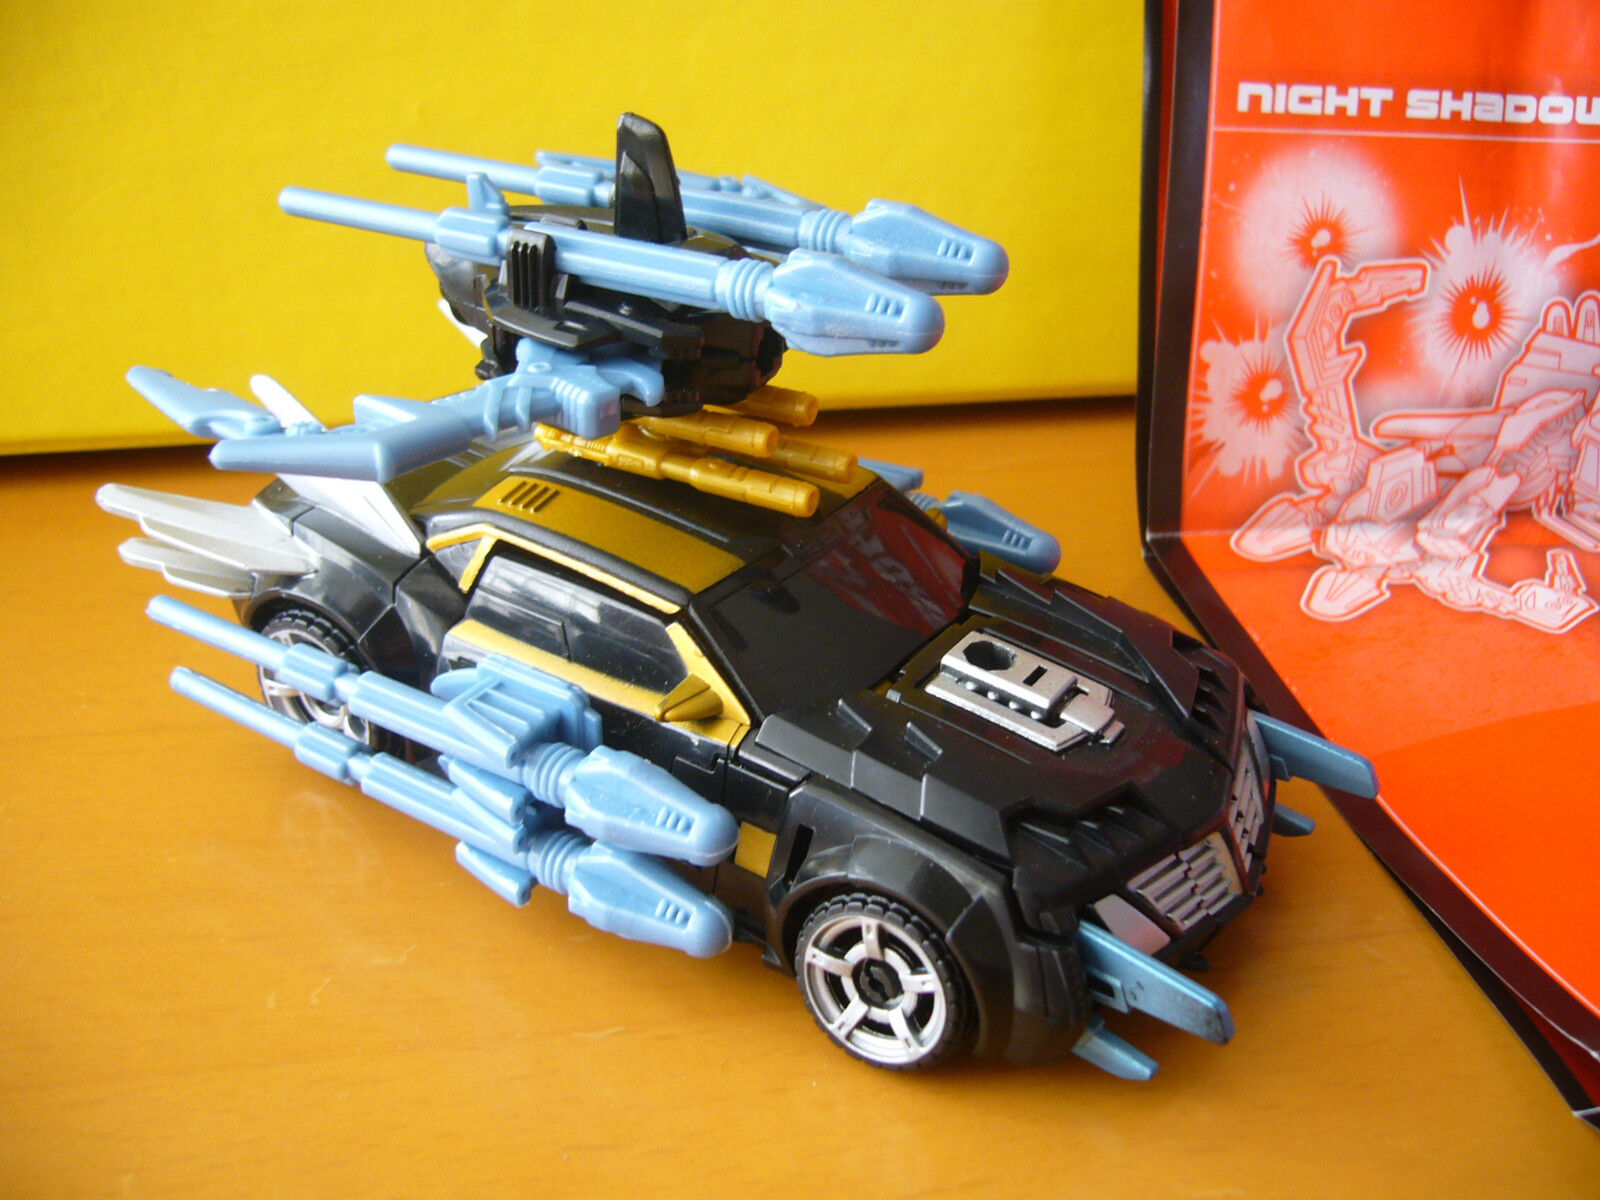 TRANSFORMERS PRIME BEAST HUNTERS NIGHT SHADOW BUMBLEBEE   top Zustand mit BA